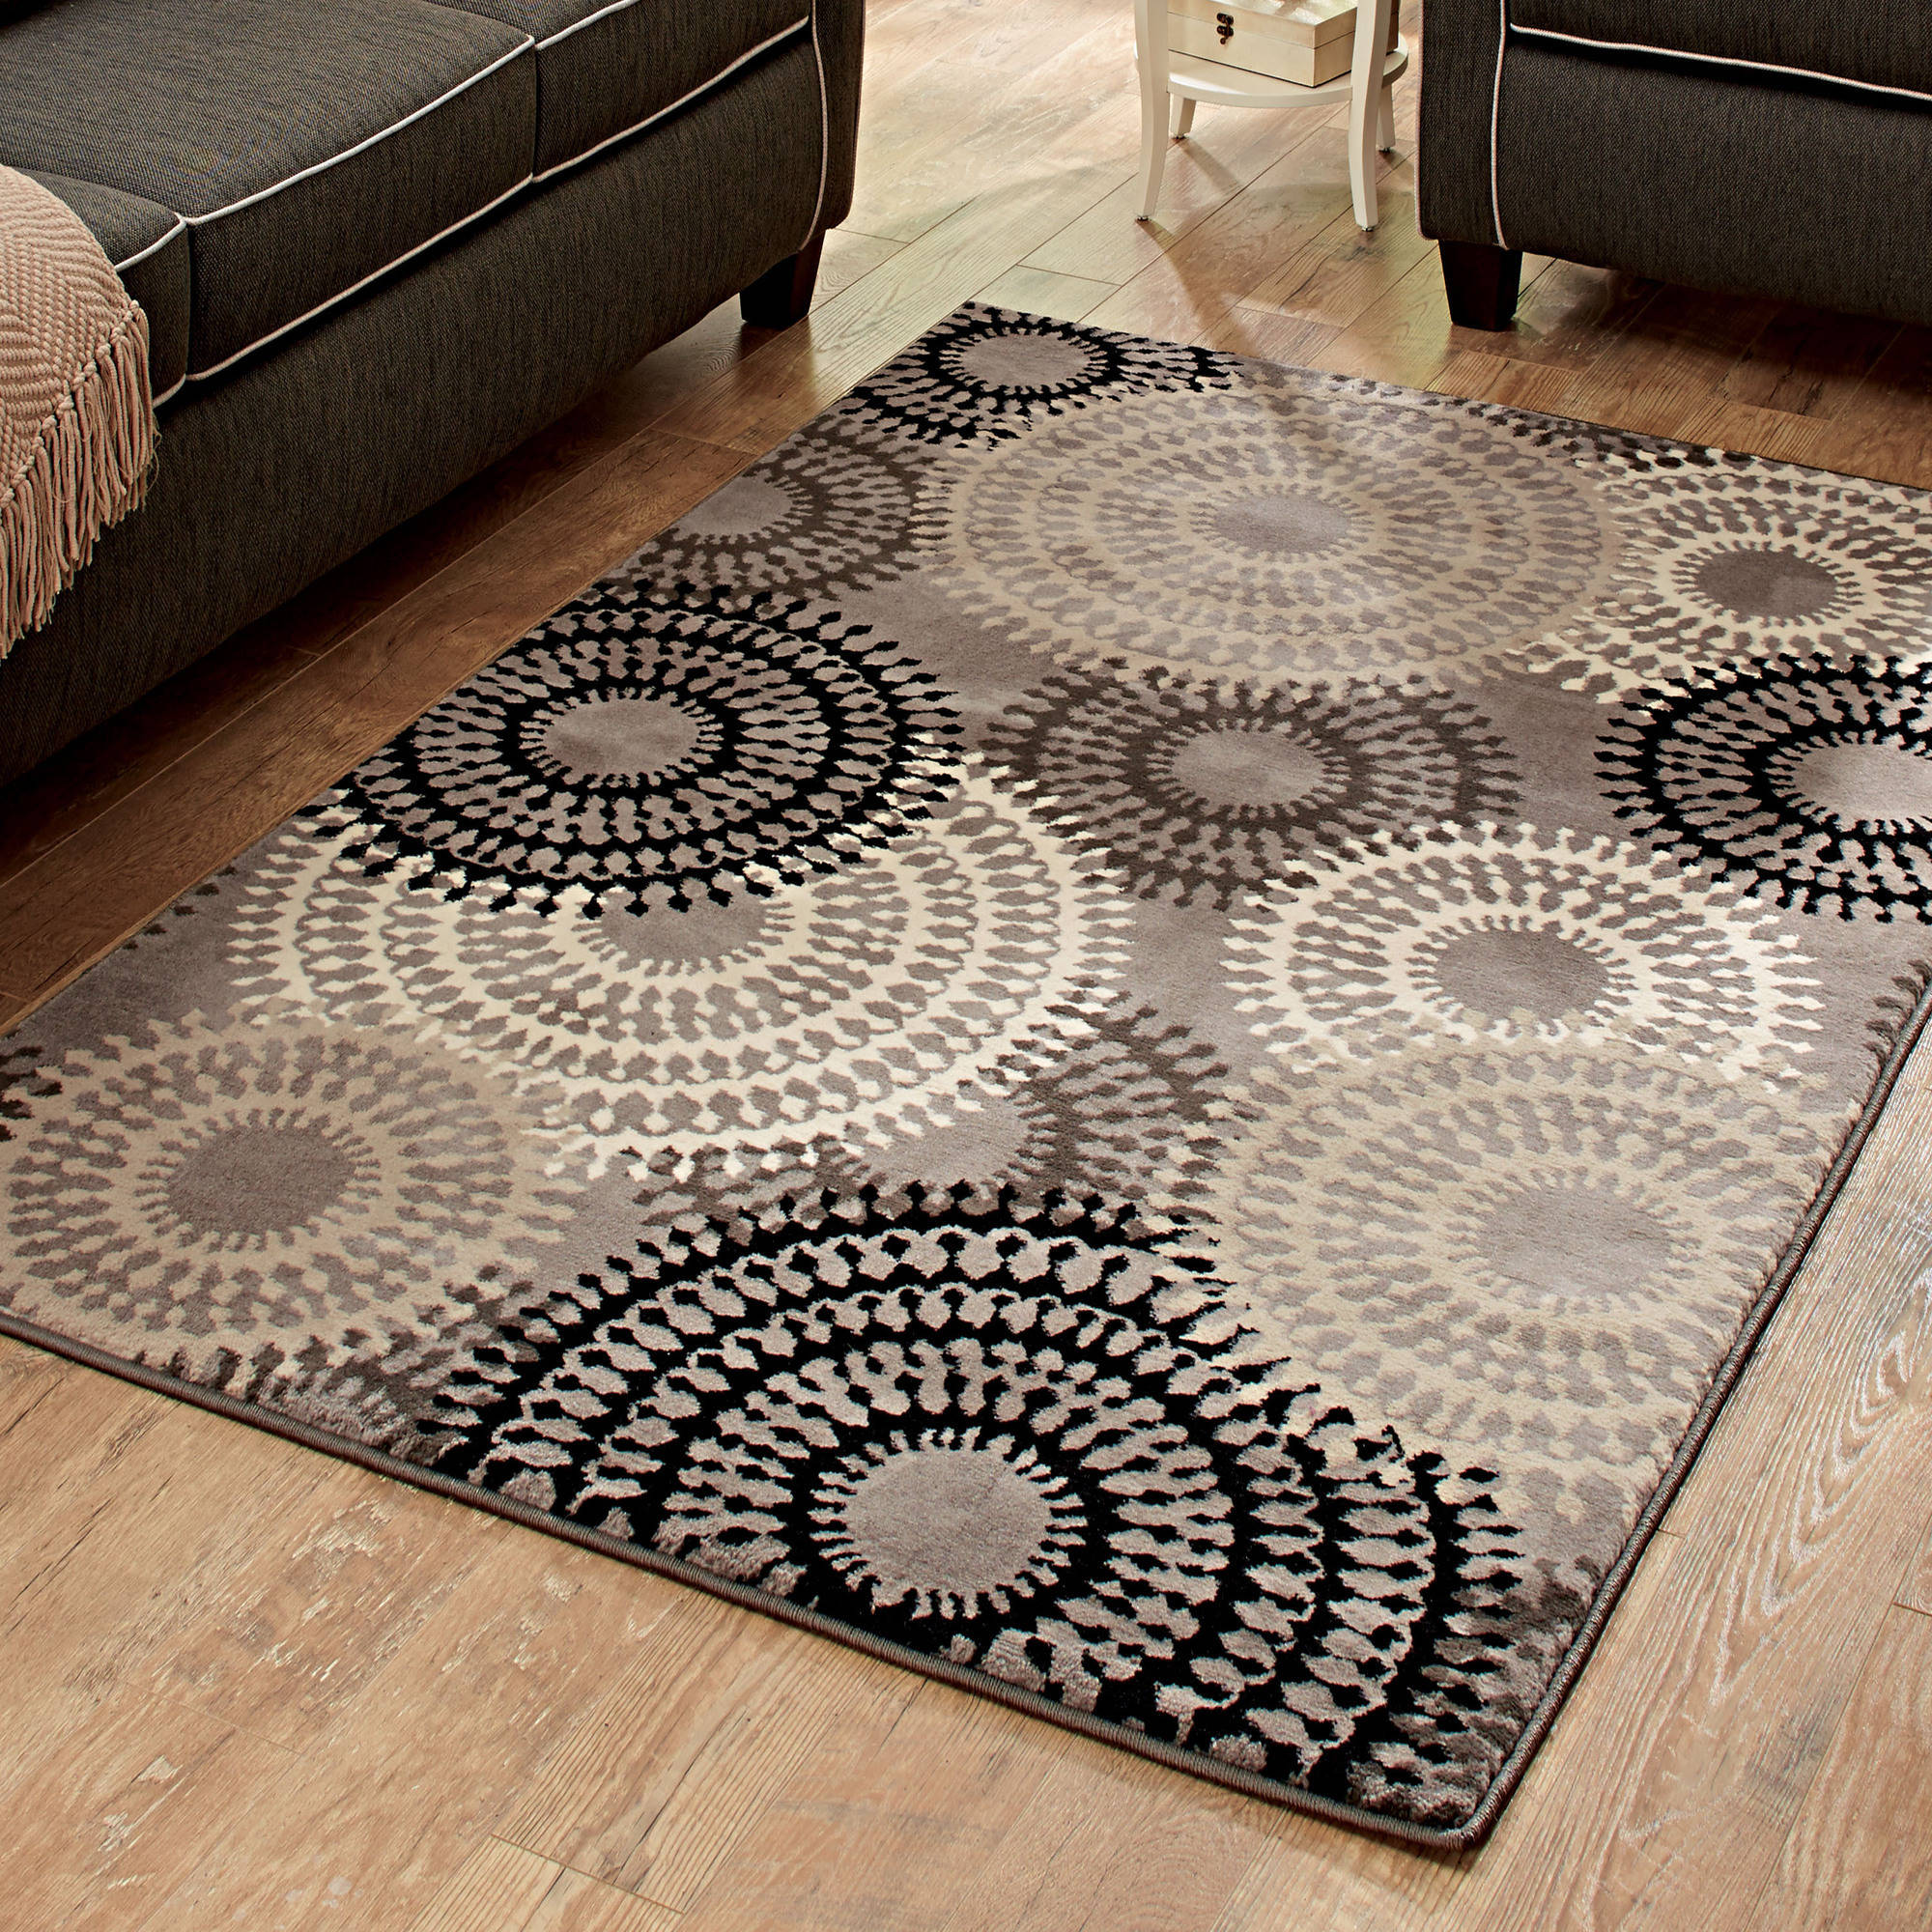 Better Homes and Gardens Taupe Ornate Circles Area Rug or Runner -  Traveller Location